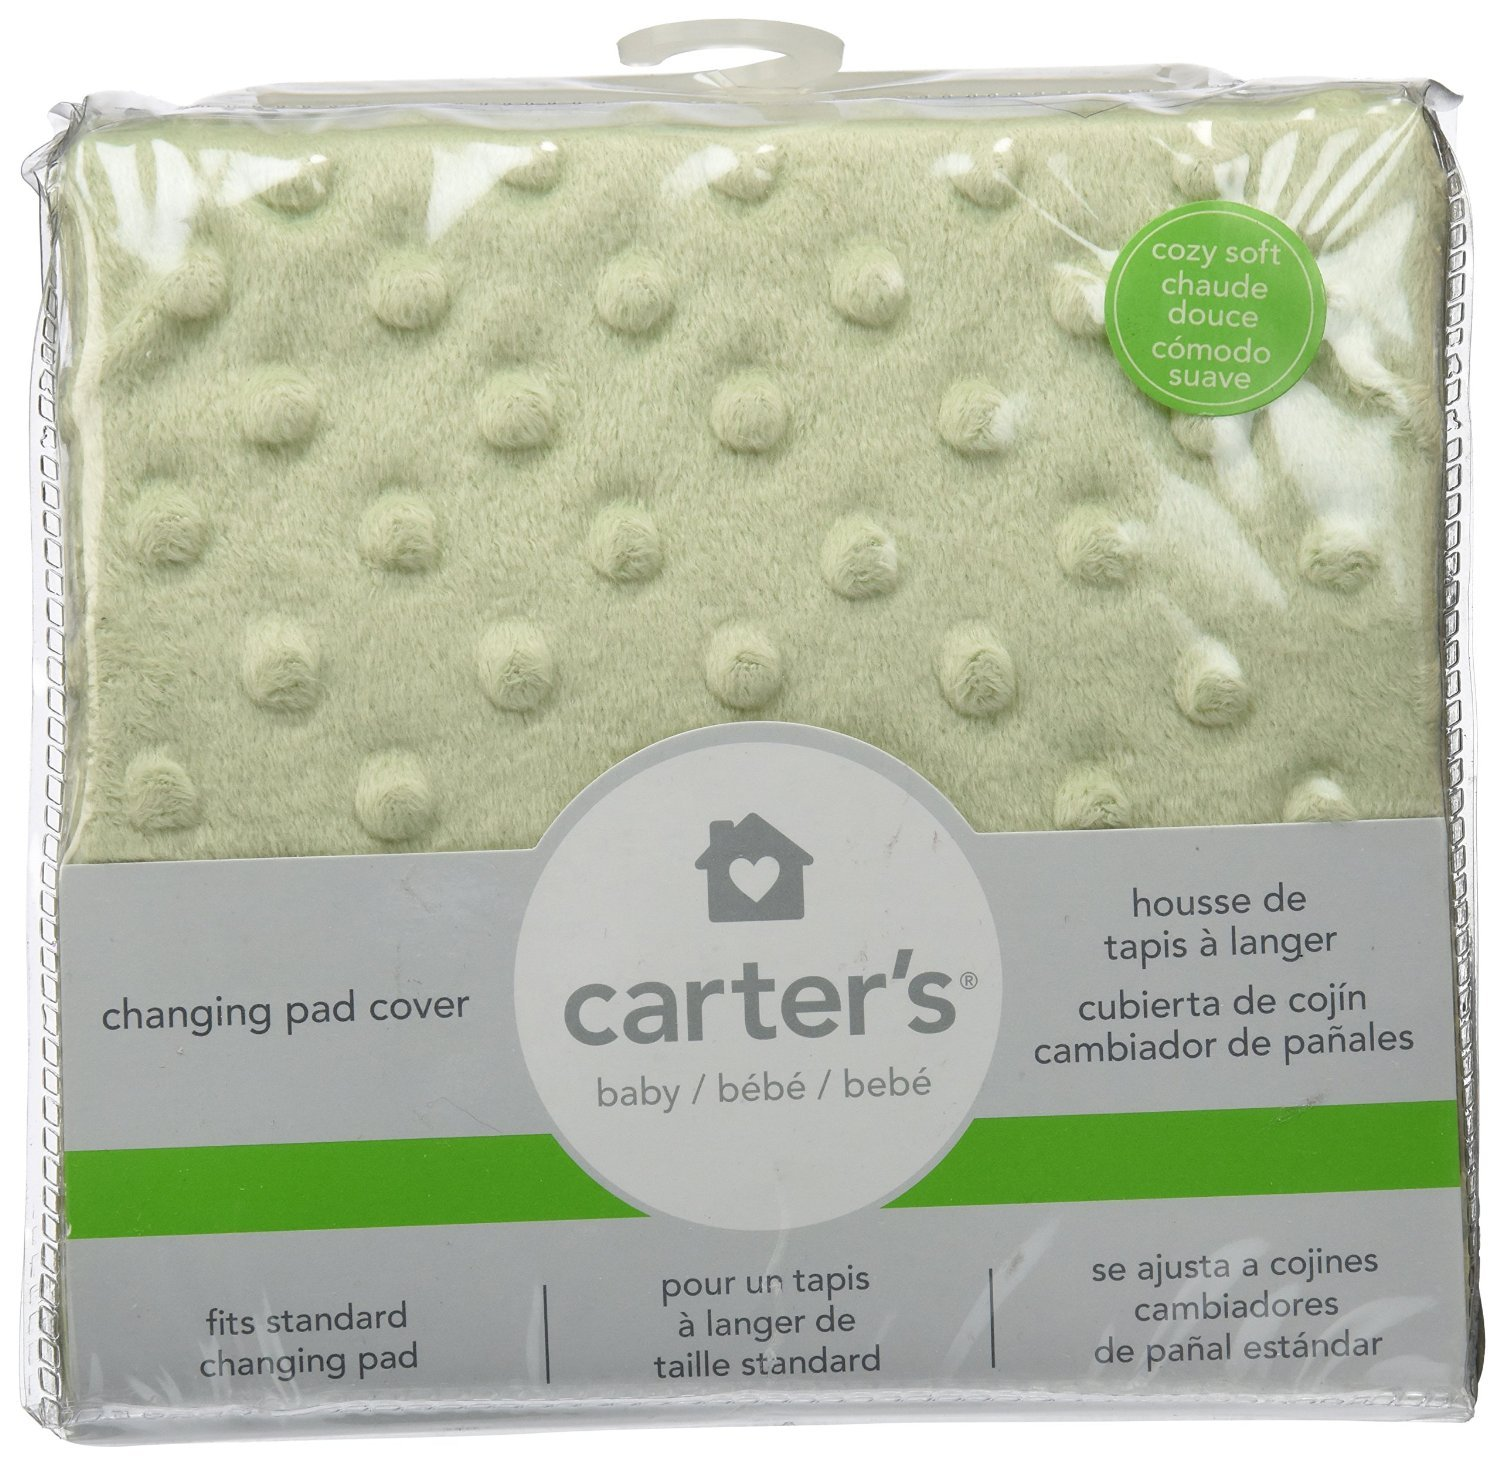 Amazon.com : Carters Super Soft Changing Pad Cover, Apple Green (Discontinued by Manufacturer) : Baby Bathing Products : Baby